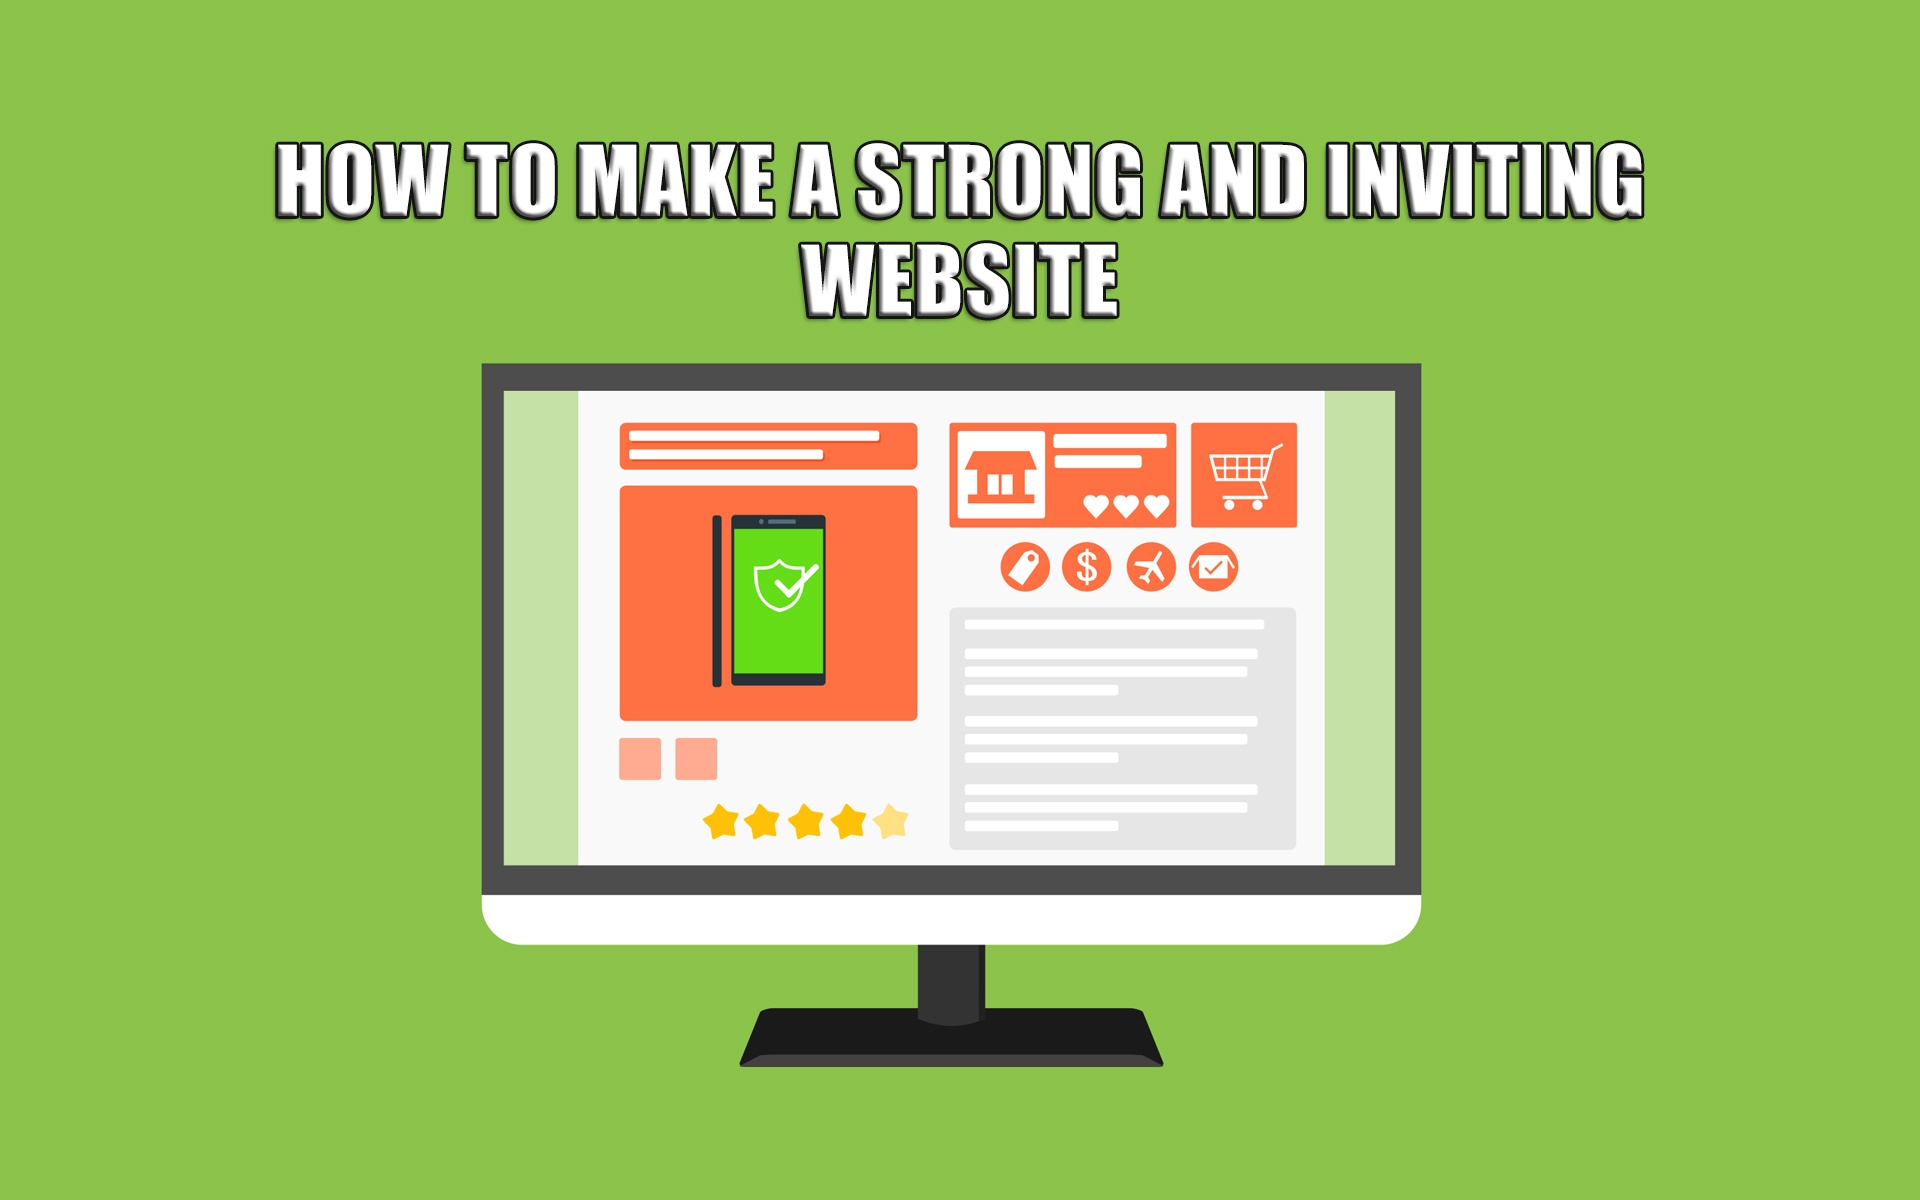 How to Make a Strong and Inviting Website